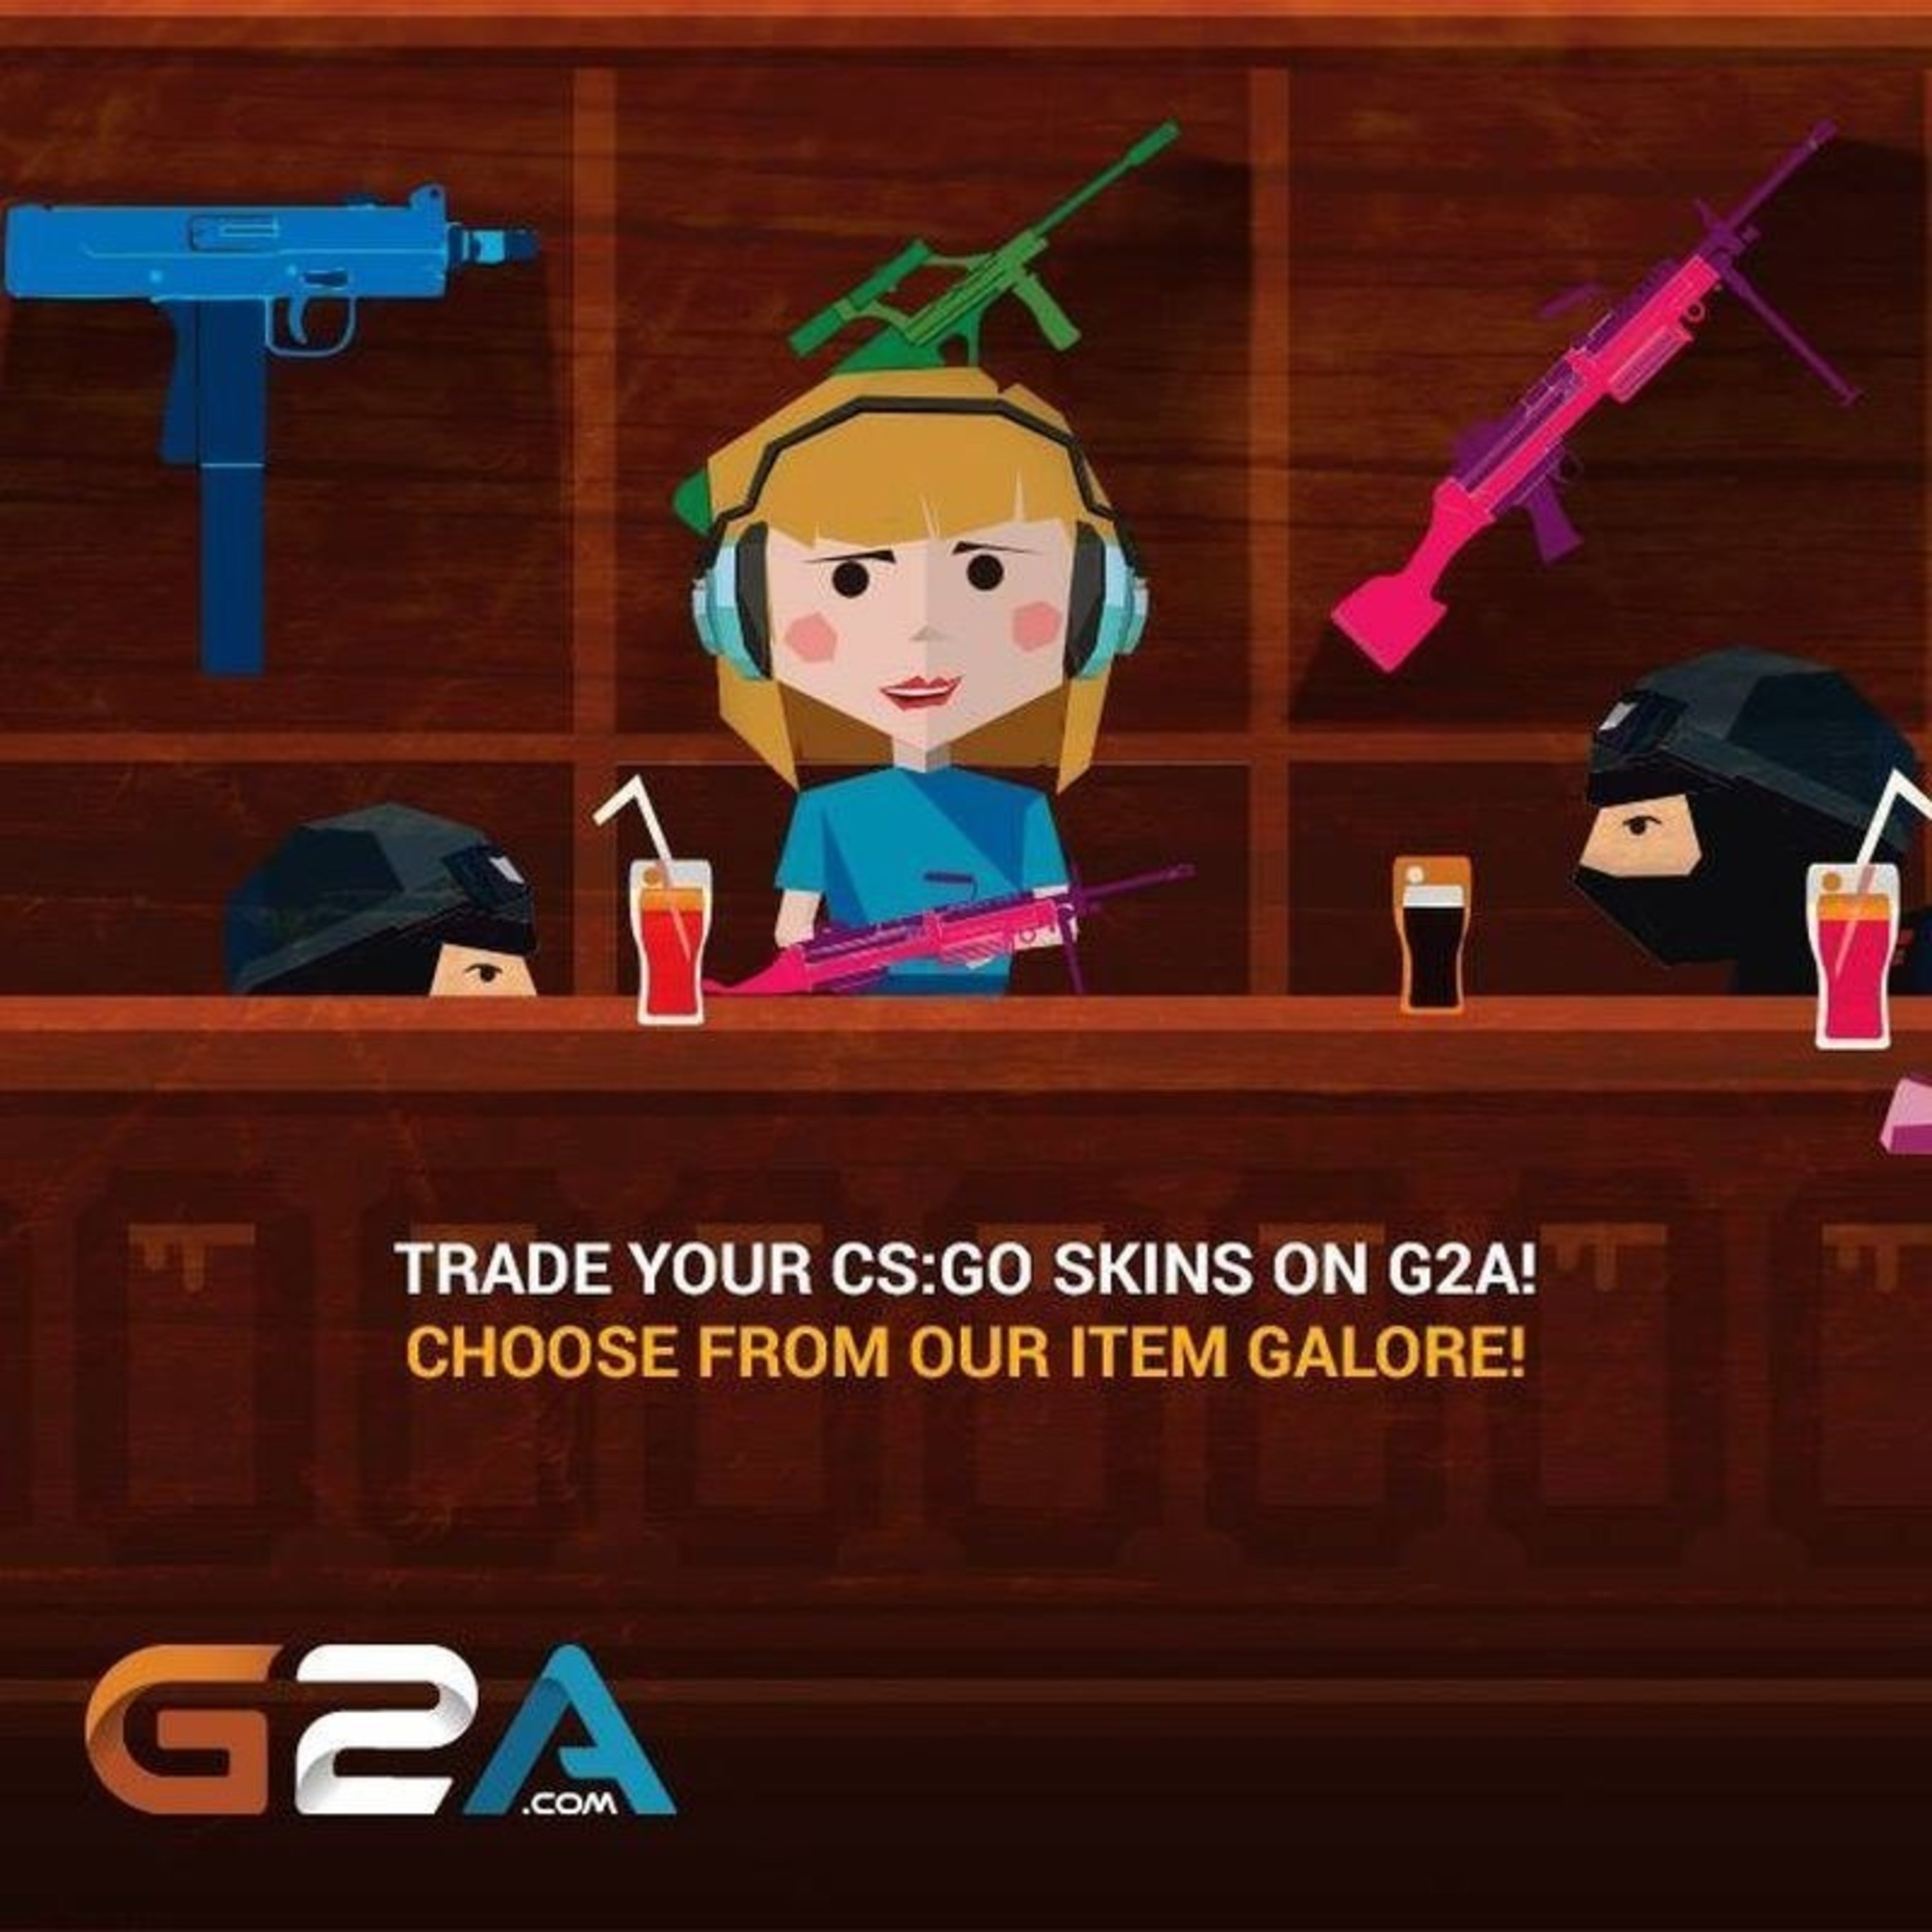 Trade Your CS:GO Skins on G2A! Choose From Our Item Galore! (PRNewsFoto/G2A.com) (PRNewsFoto/G2A.com)